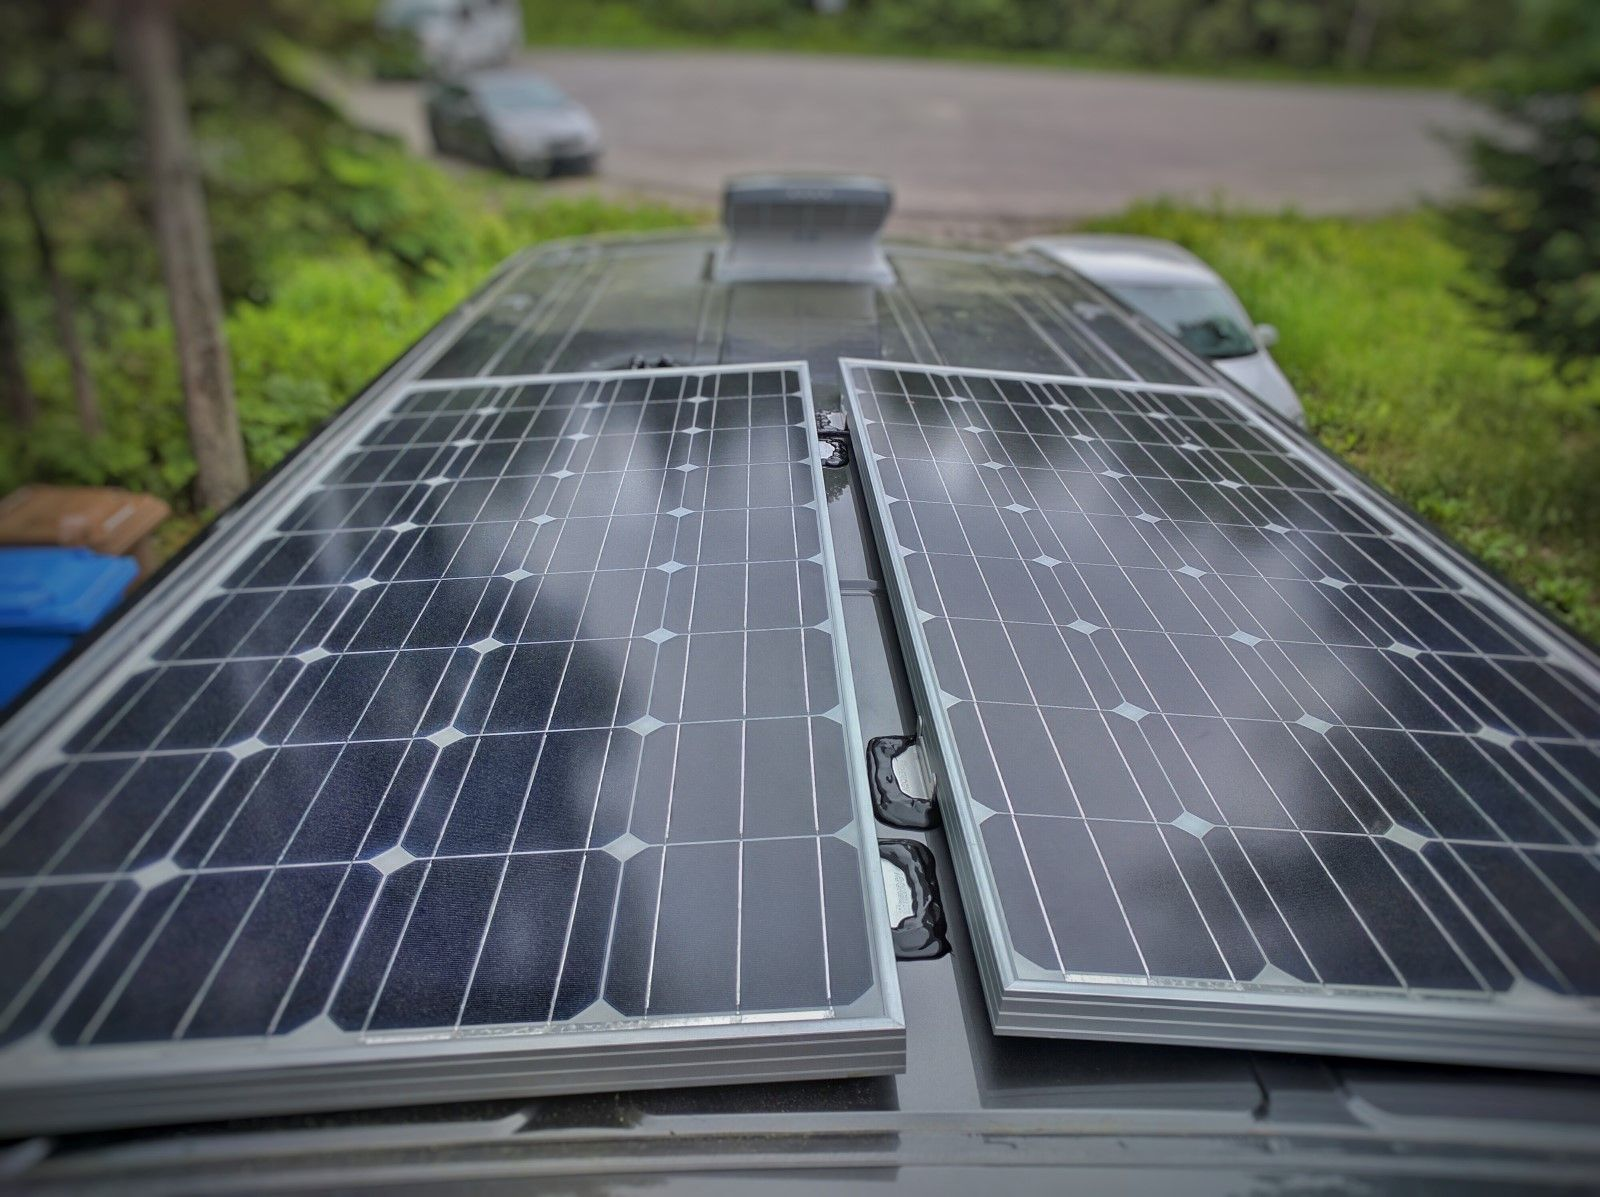 How To Install Solar Panels On A Camper Van Conversion With 3m Vhb Tape No Holes Faroutride Solar Panels Solar Panel Installation Best Solar Panels